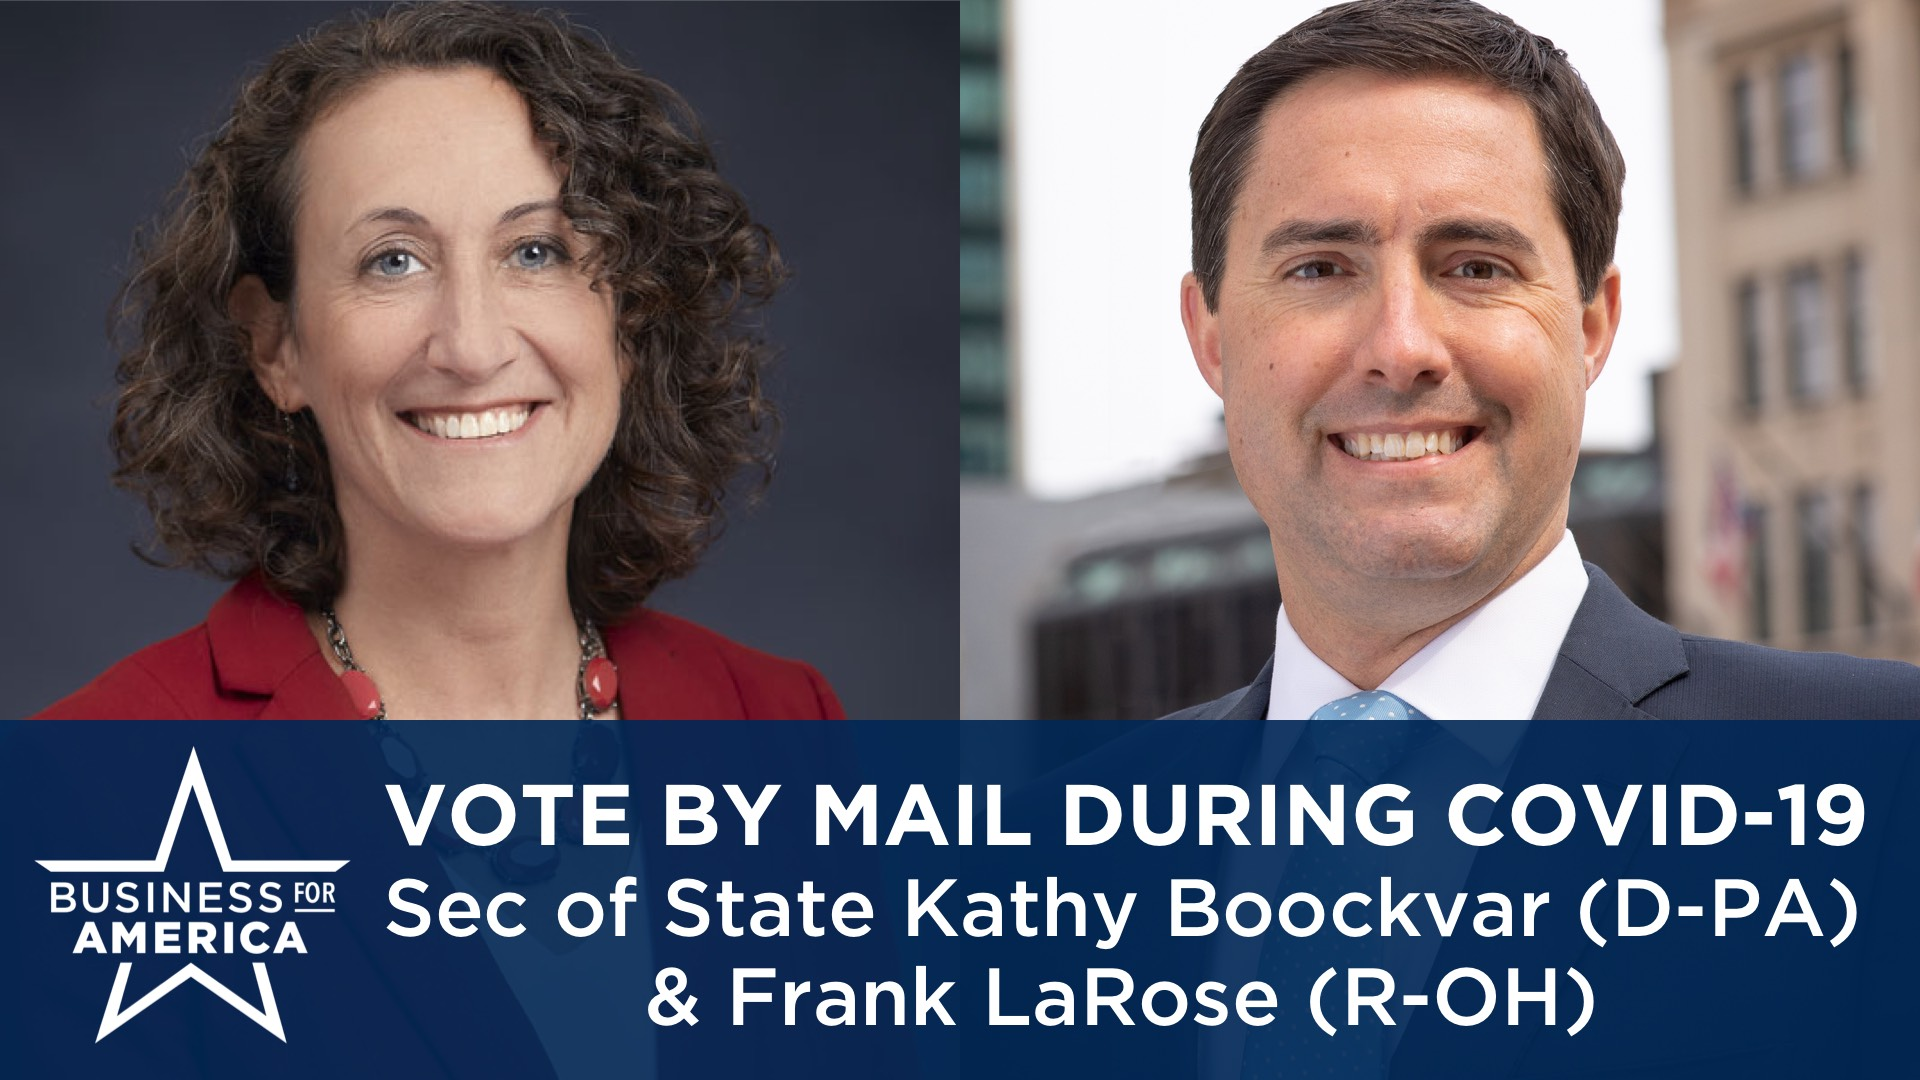 Expanding Vote-by-Mail During COVID-19 • Secretaries of State Kathy Boockvar (D-PA) & Frank LaRose (R-OH)